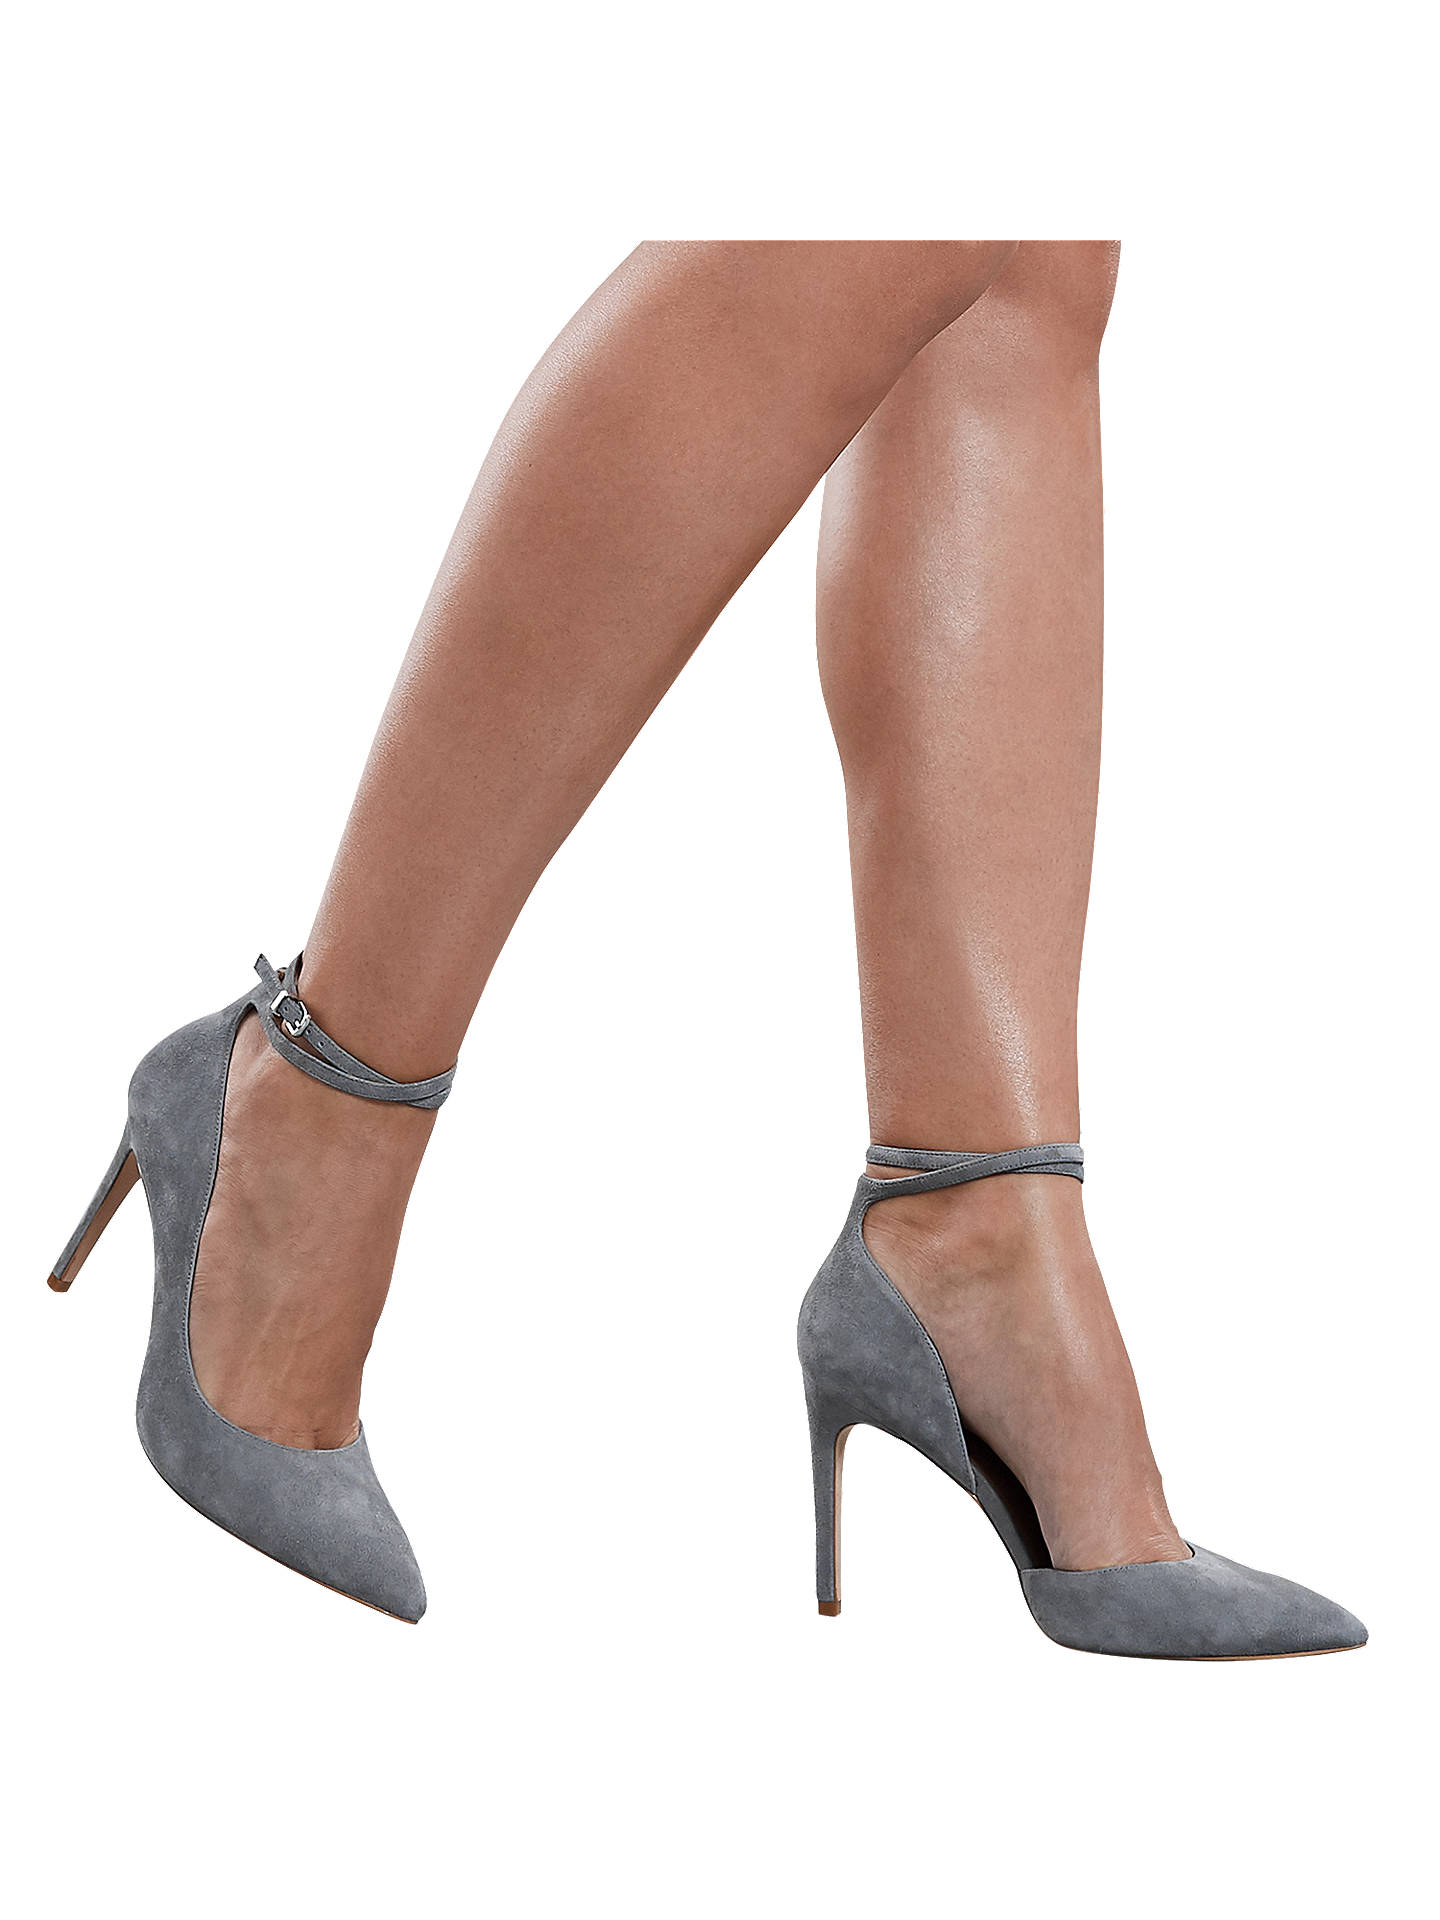 BuyReiss Lya Suede Ankle Strap Shoes, Blue, 7 Online at johnlewis.com